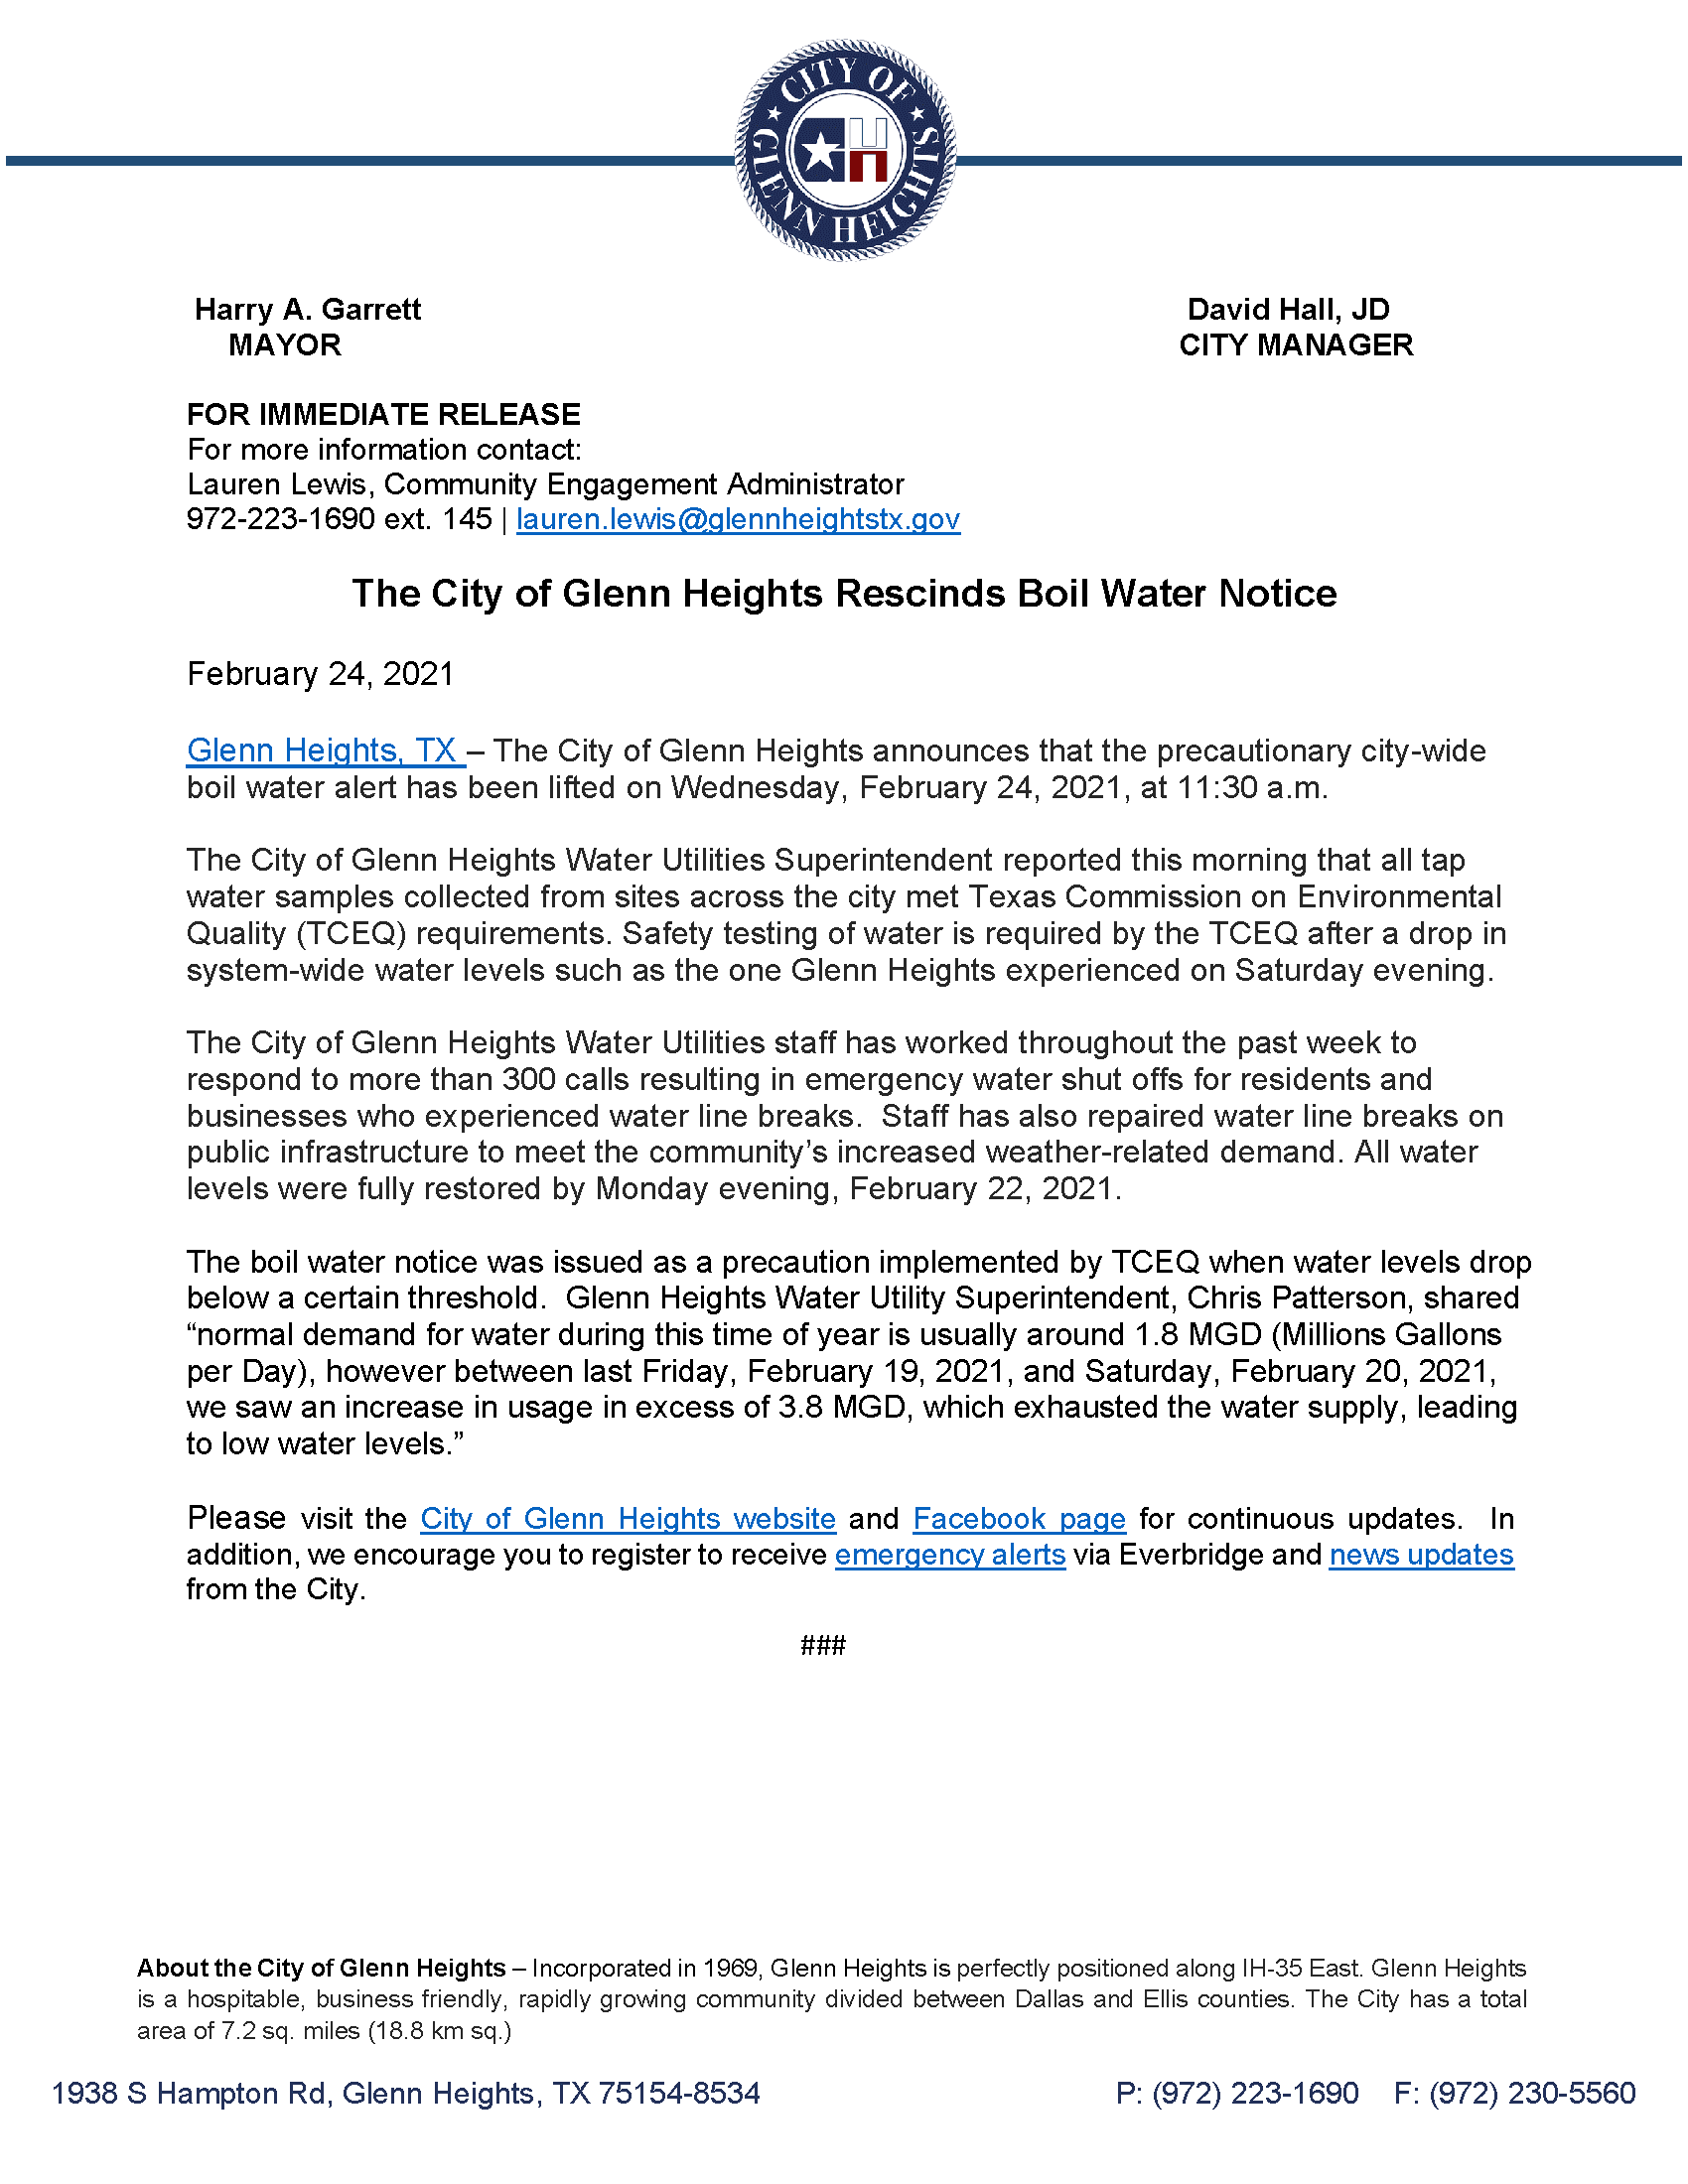 Final Press Release 2.24.21 p.1 The City of Glenn Heights Rescinds Boil Water Notice